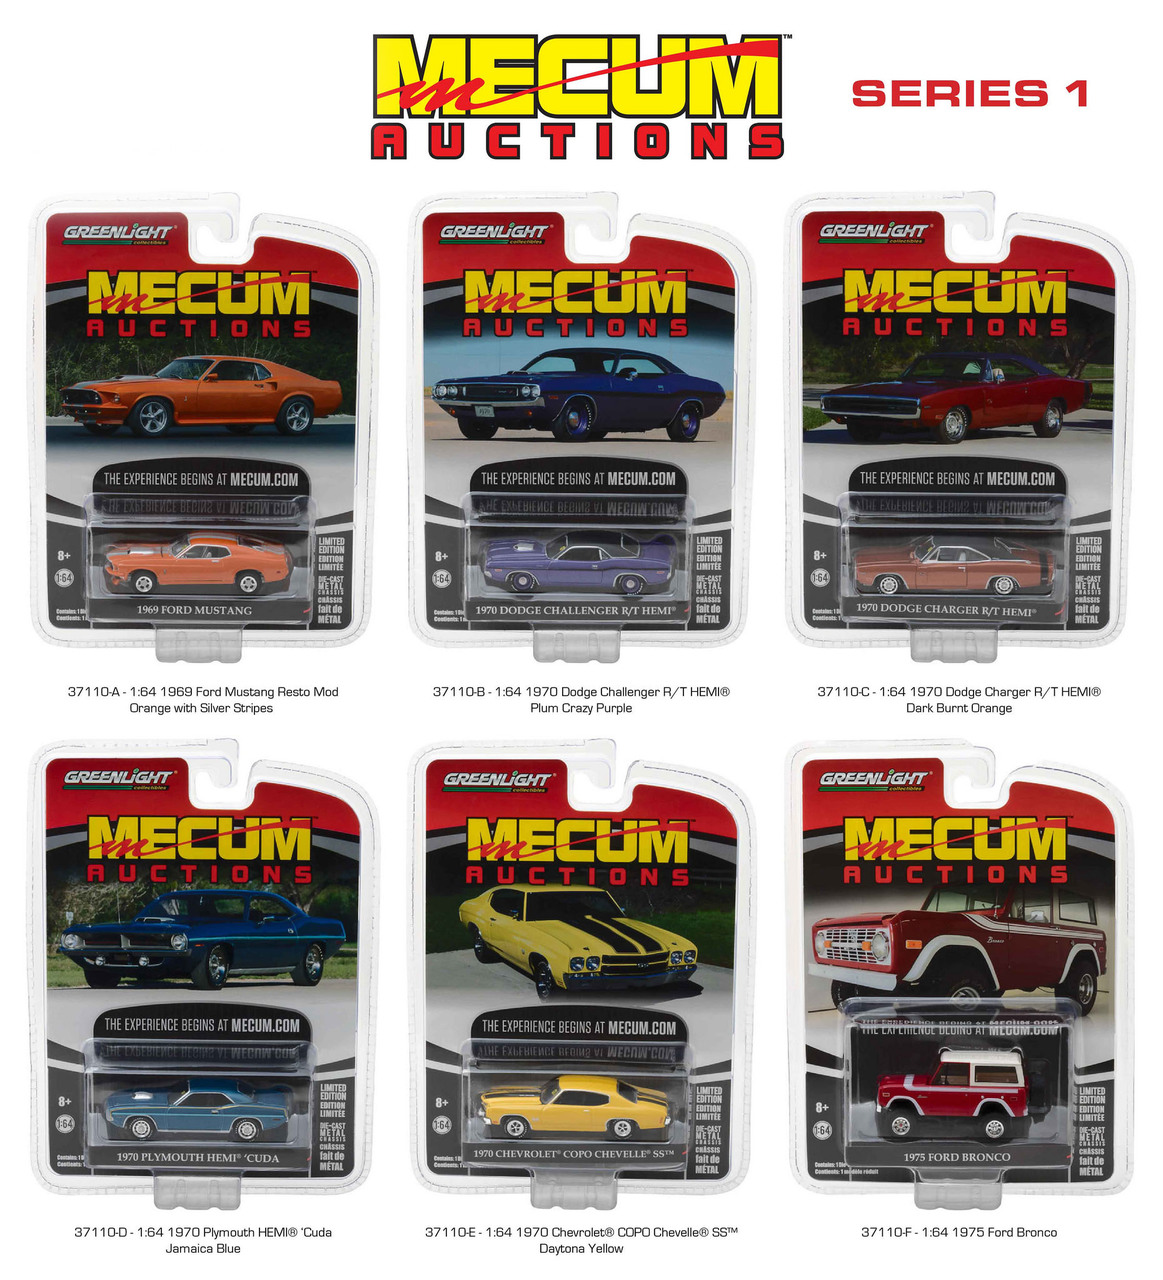 Mecum Auctions Collector Series 1 6pc Diecast Car Set 1/64 Diecast Model Cars by Greenlight